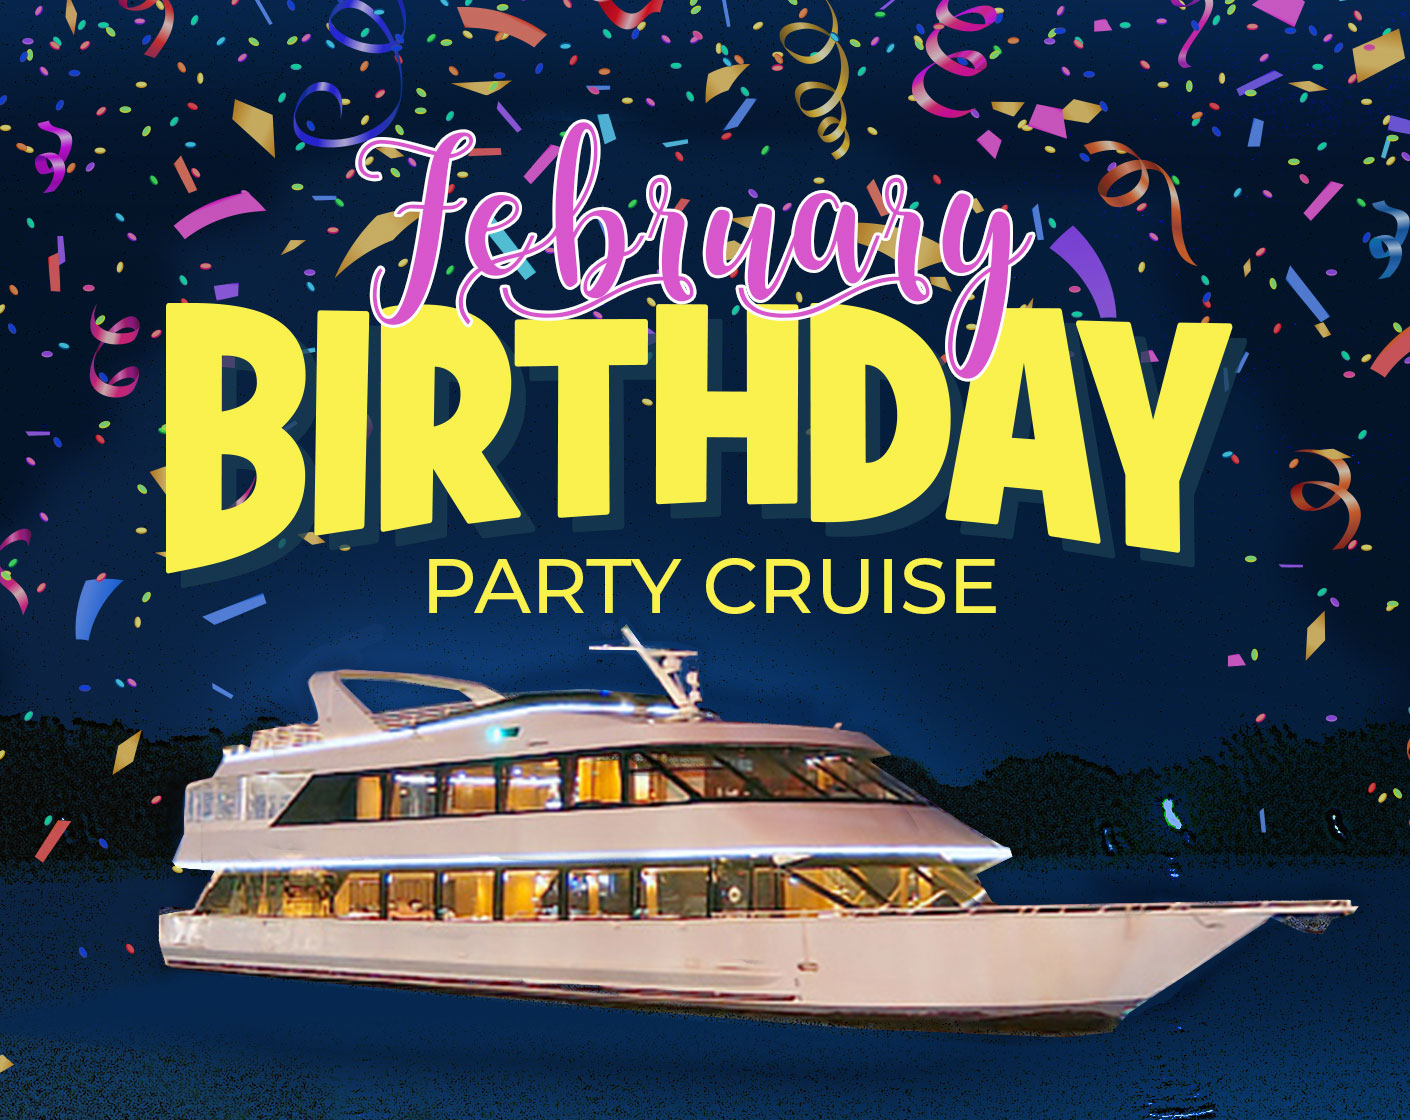 February Birthday Party Cruise